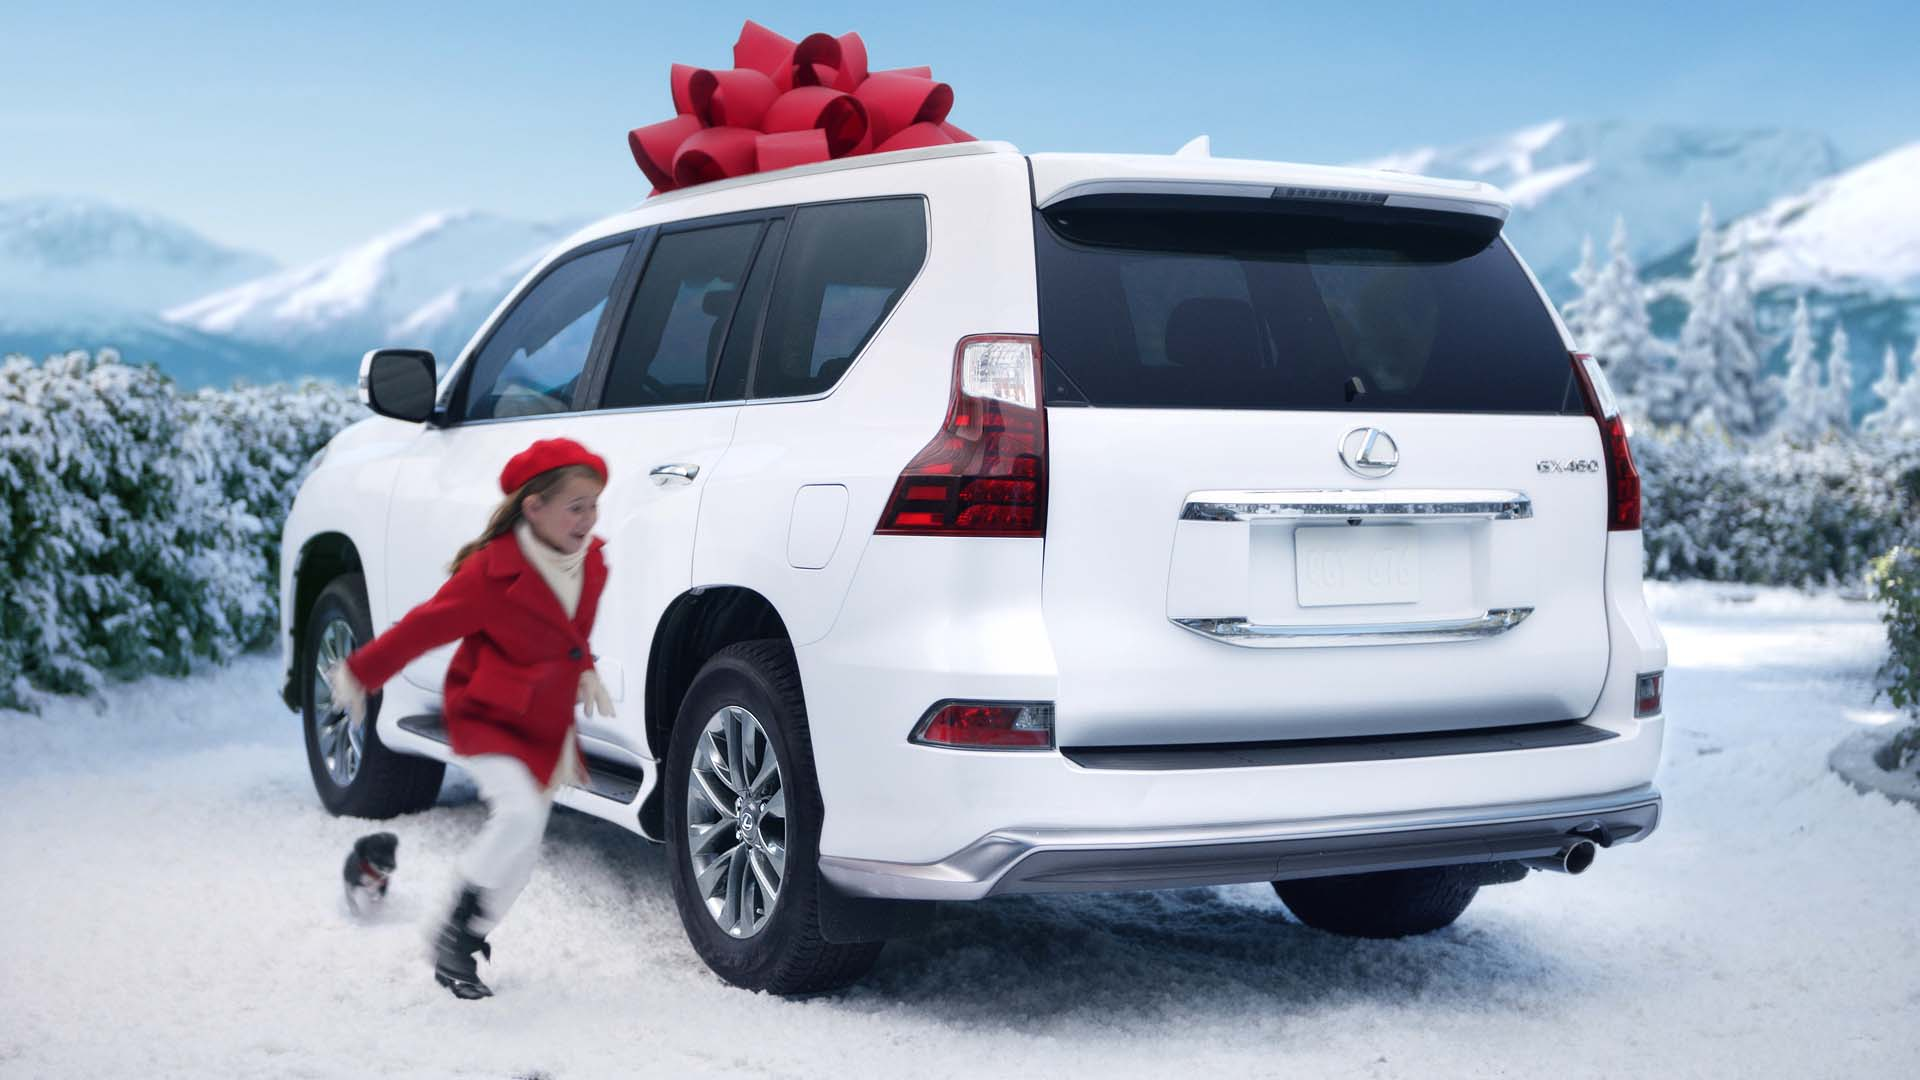 Lexus Key Fob >> Experience the Childlike Excitement of the Holidays with Lexus